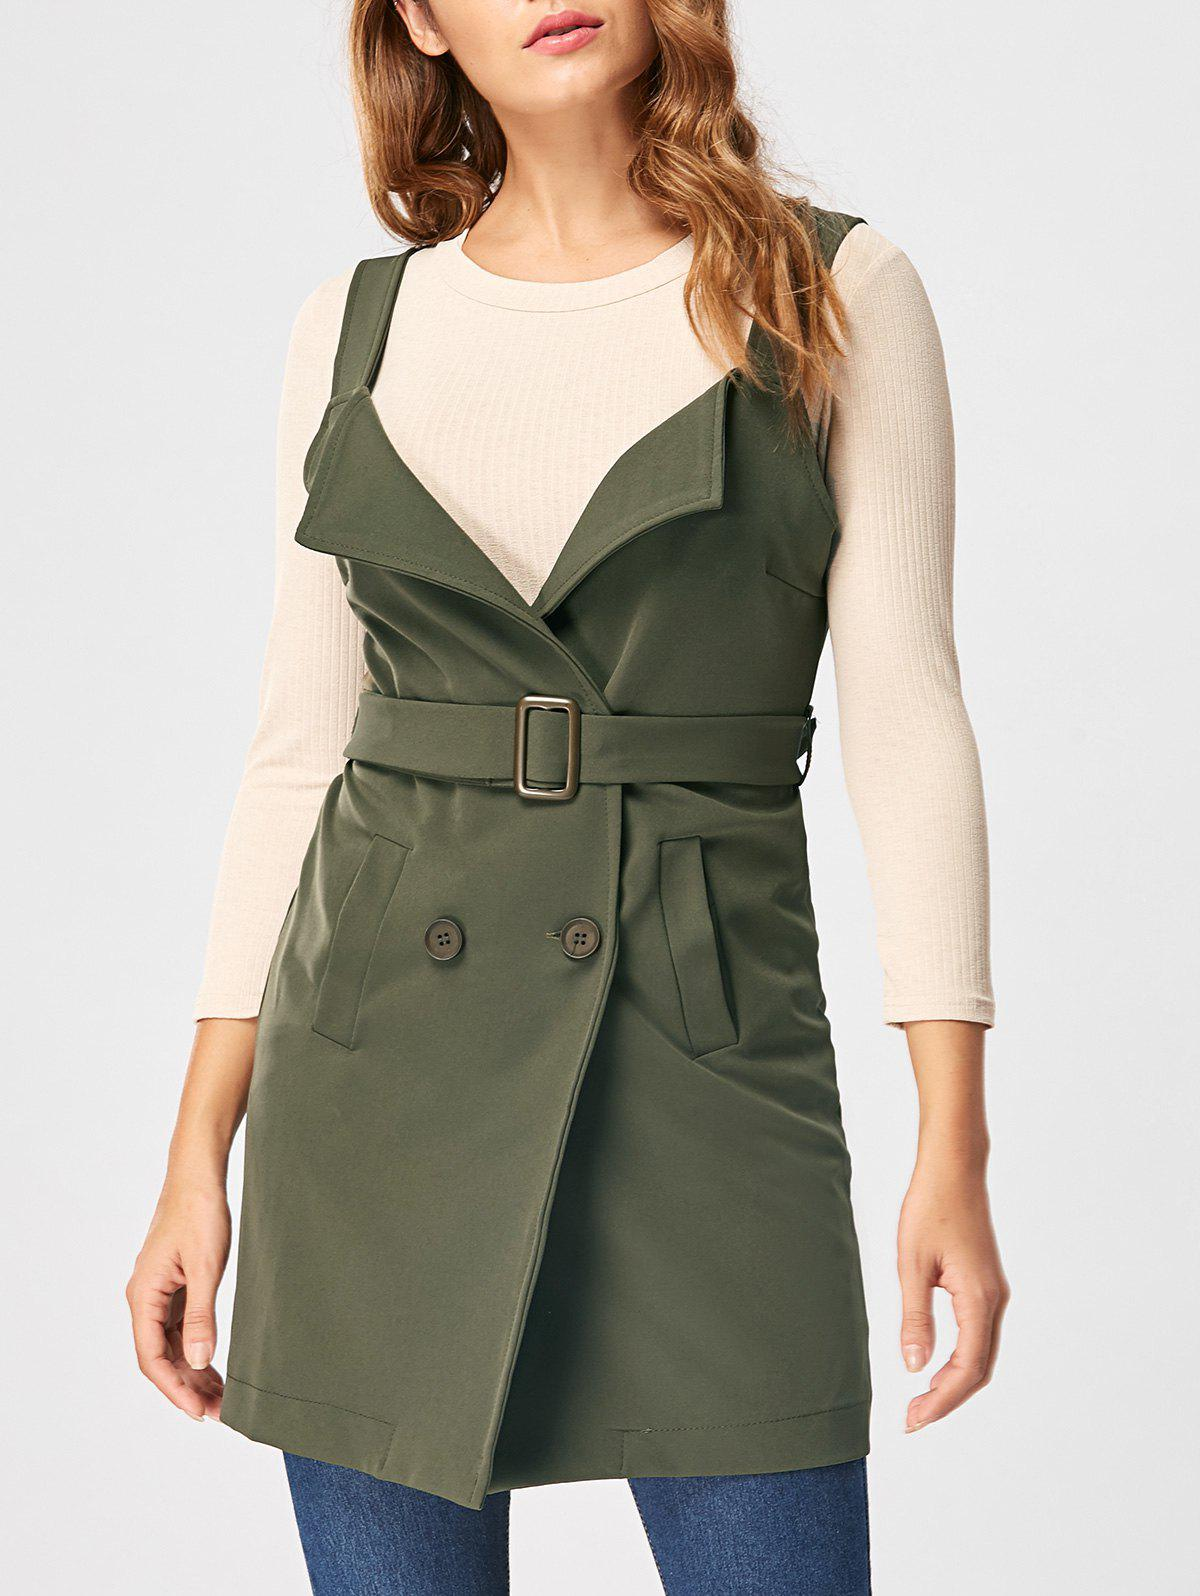 Vertical Pockets Waistcoat with Belt - ARMY GREEN L